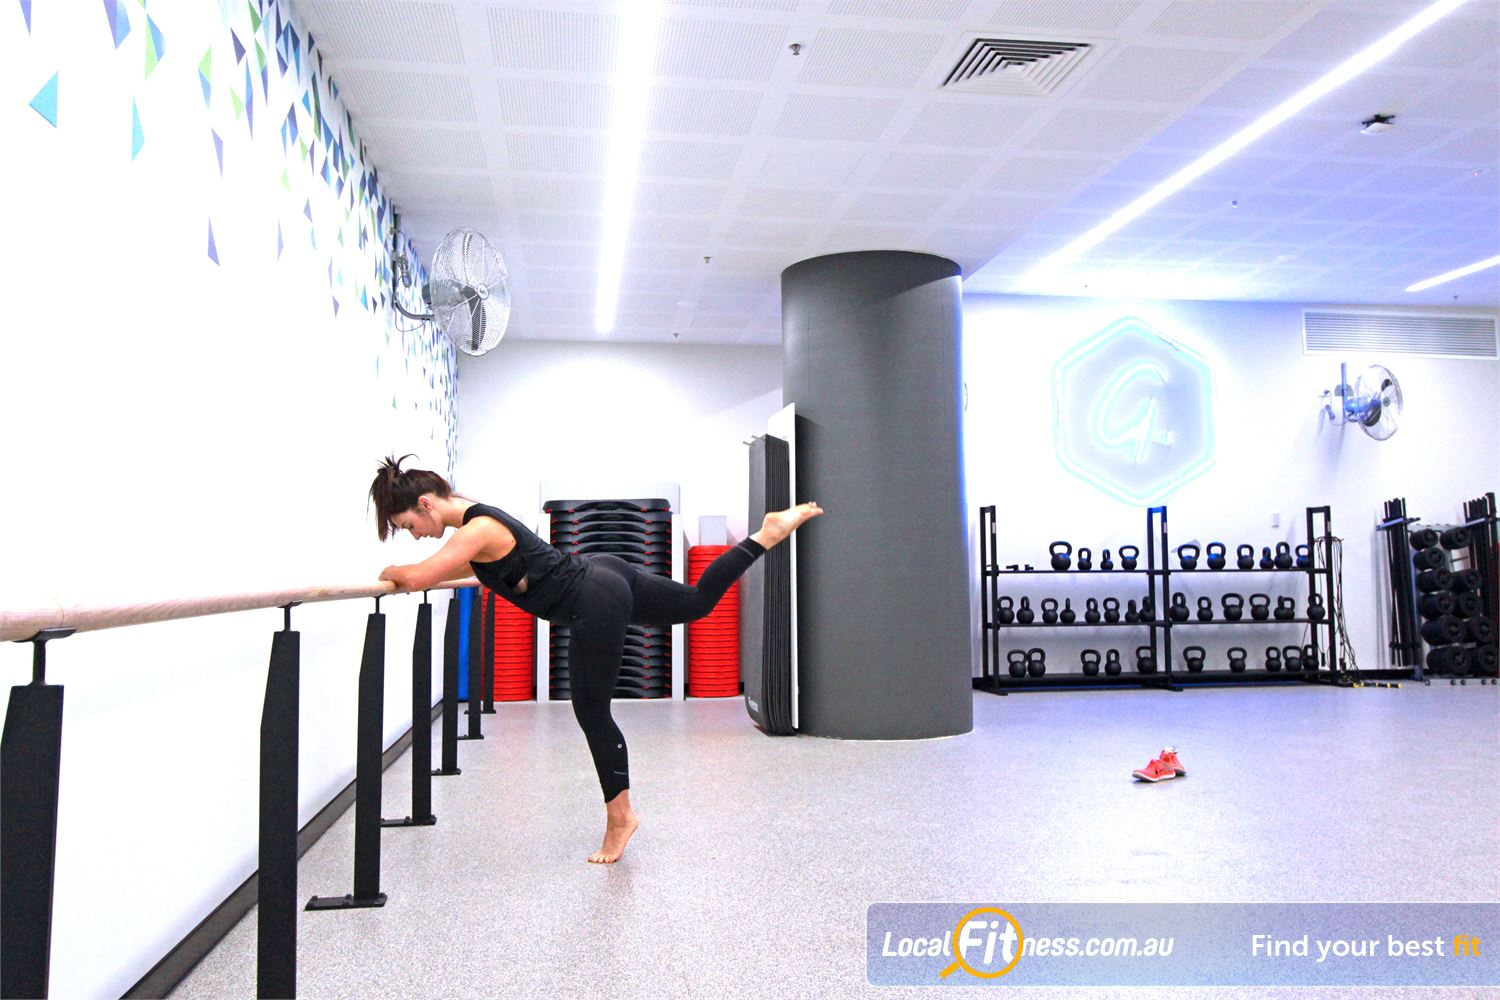 Goodlife Health Clubs Near Seaford Your favorite classes inc. Noarlunga Yoga, Pilates, Barre and more.